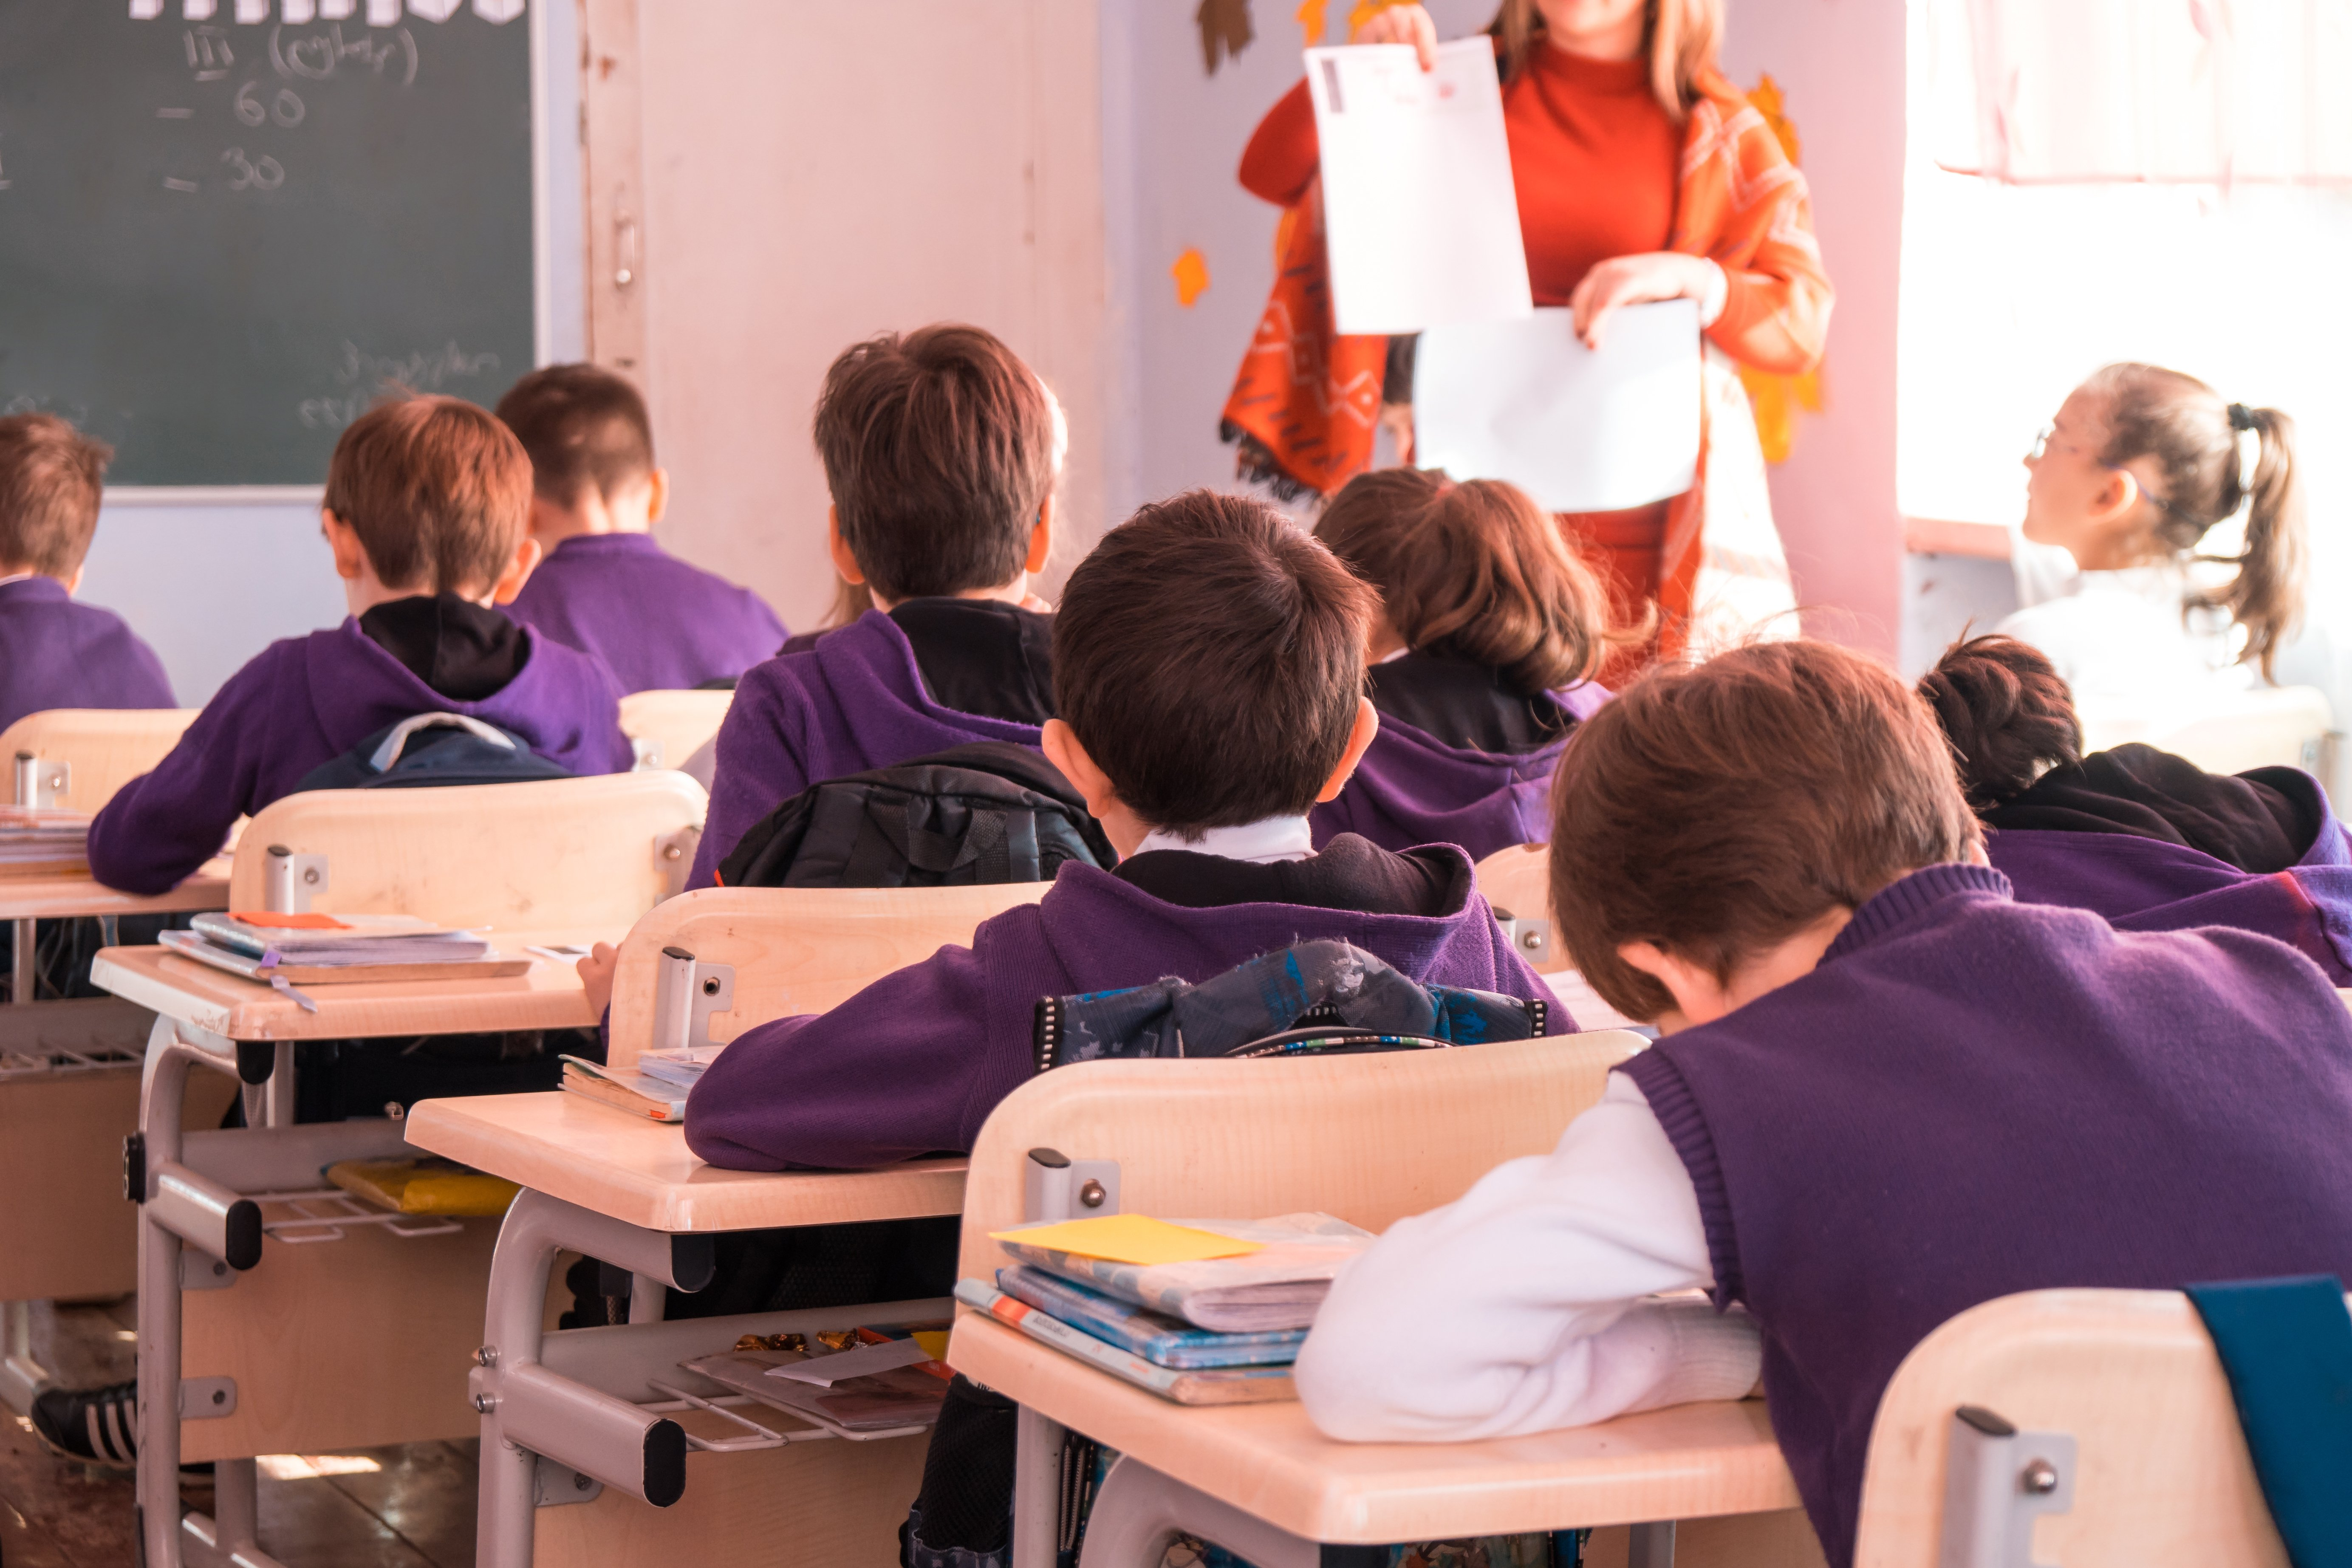 School children participating actively in class | Shutterstock.com